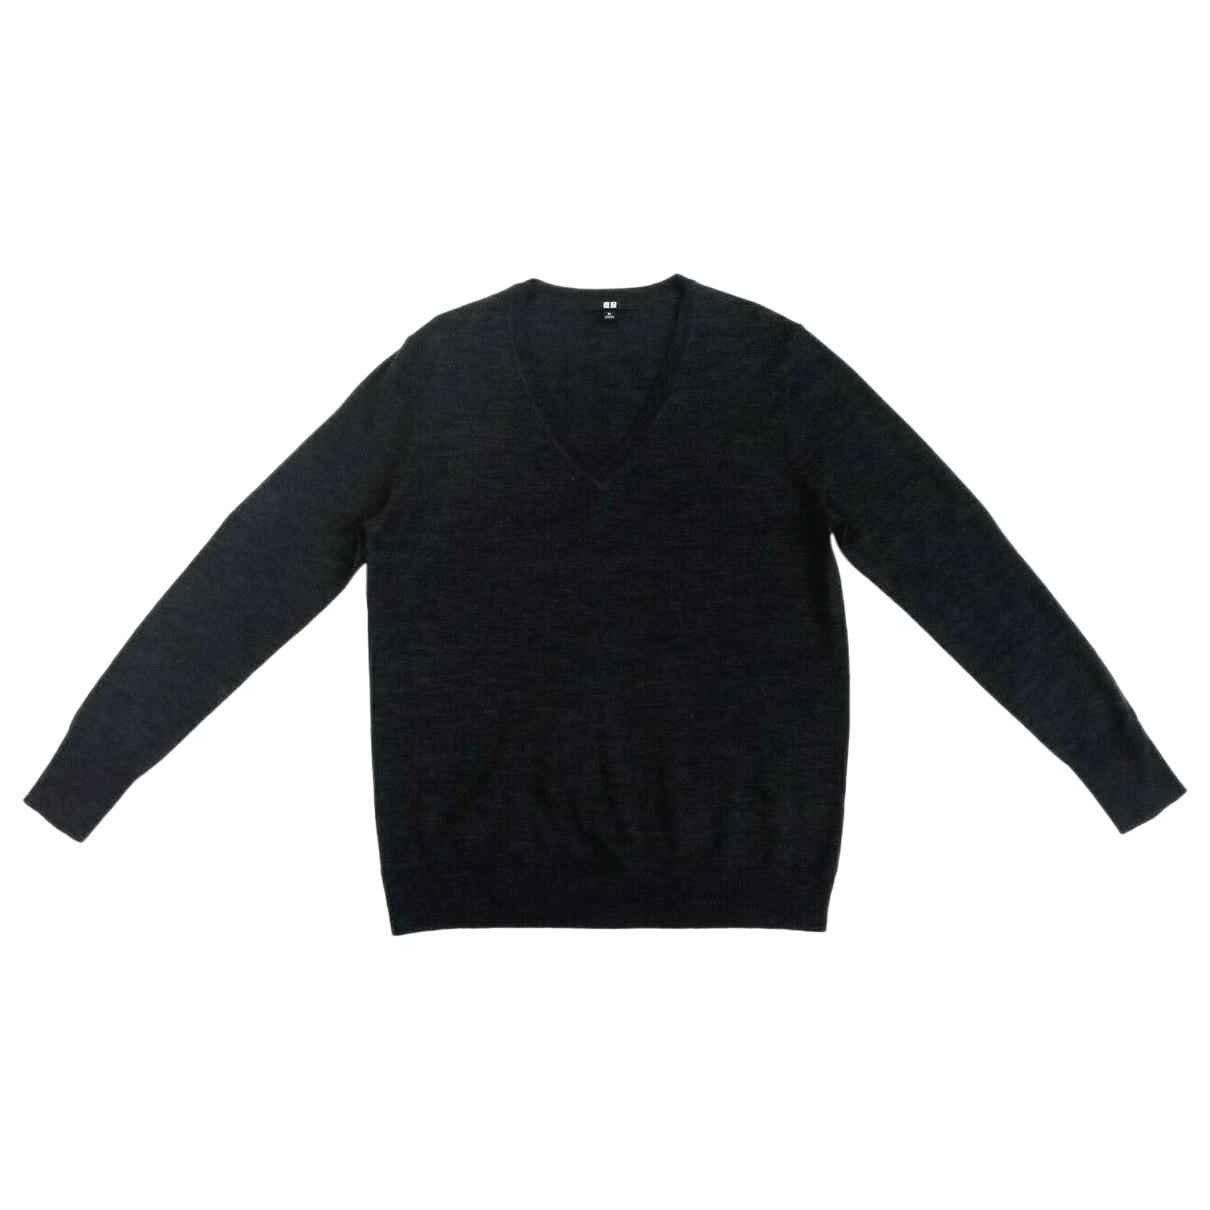 Uniqlo \N Anthracite Wool Knitwear & Sweatshirts for Men XL International